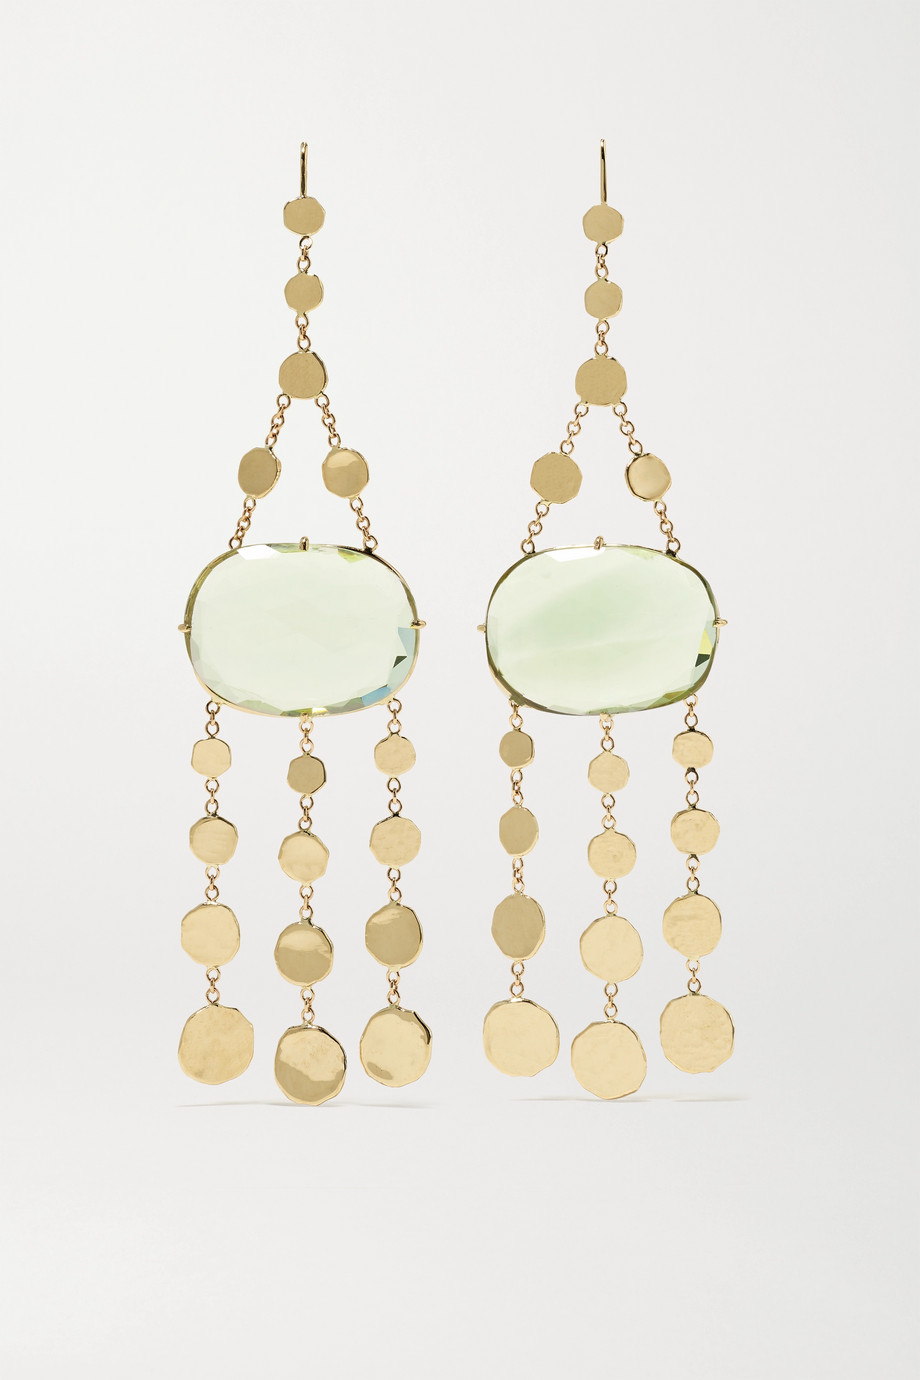 JACQUIE AICHE 14-karat gold amethyst earrings